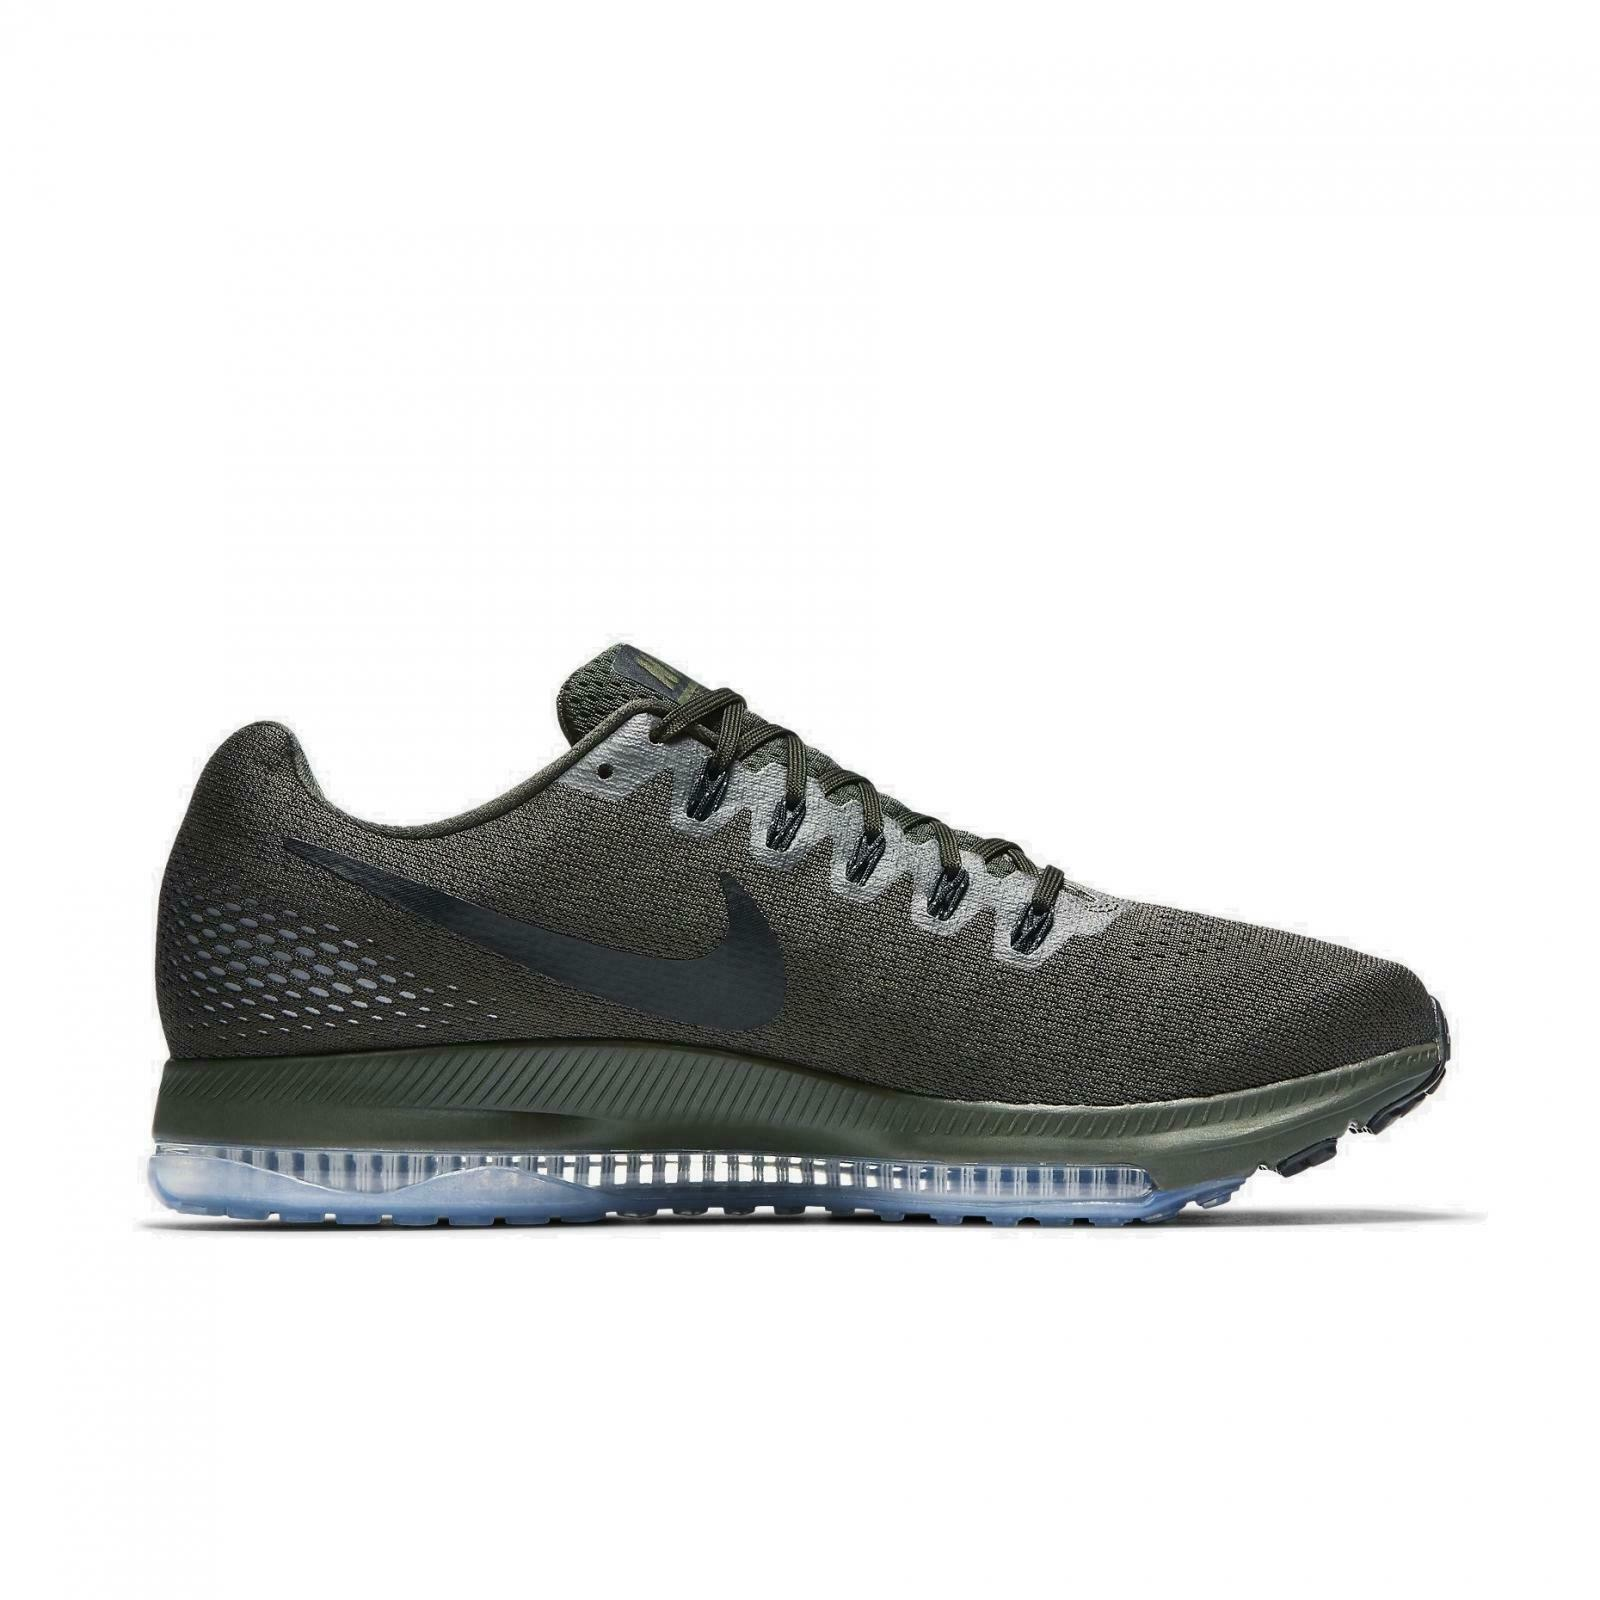 bcaf2f7d70d Mens NIKE ZOOM ALL OUT Running Trainers 878670 301 LOW Sequoia nilrks1399-Athletic  Shoes